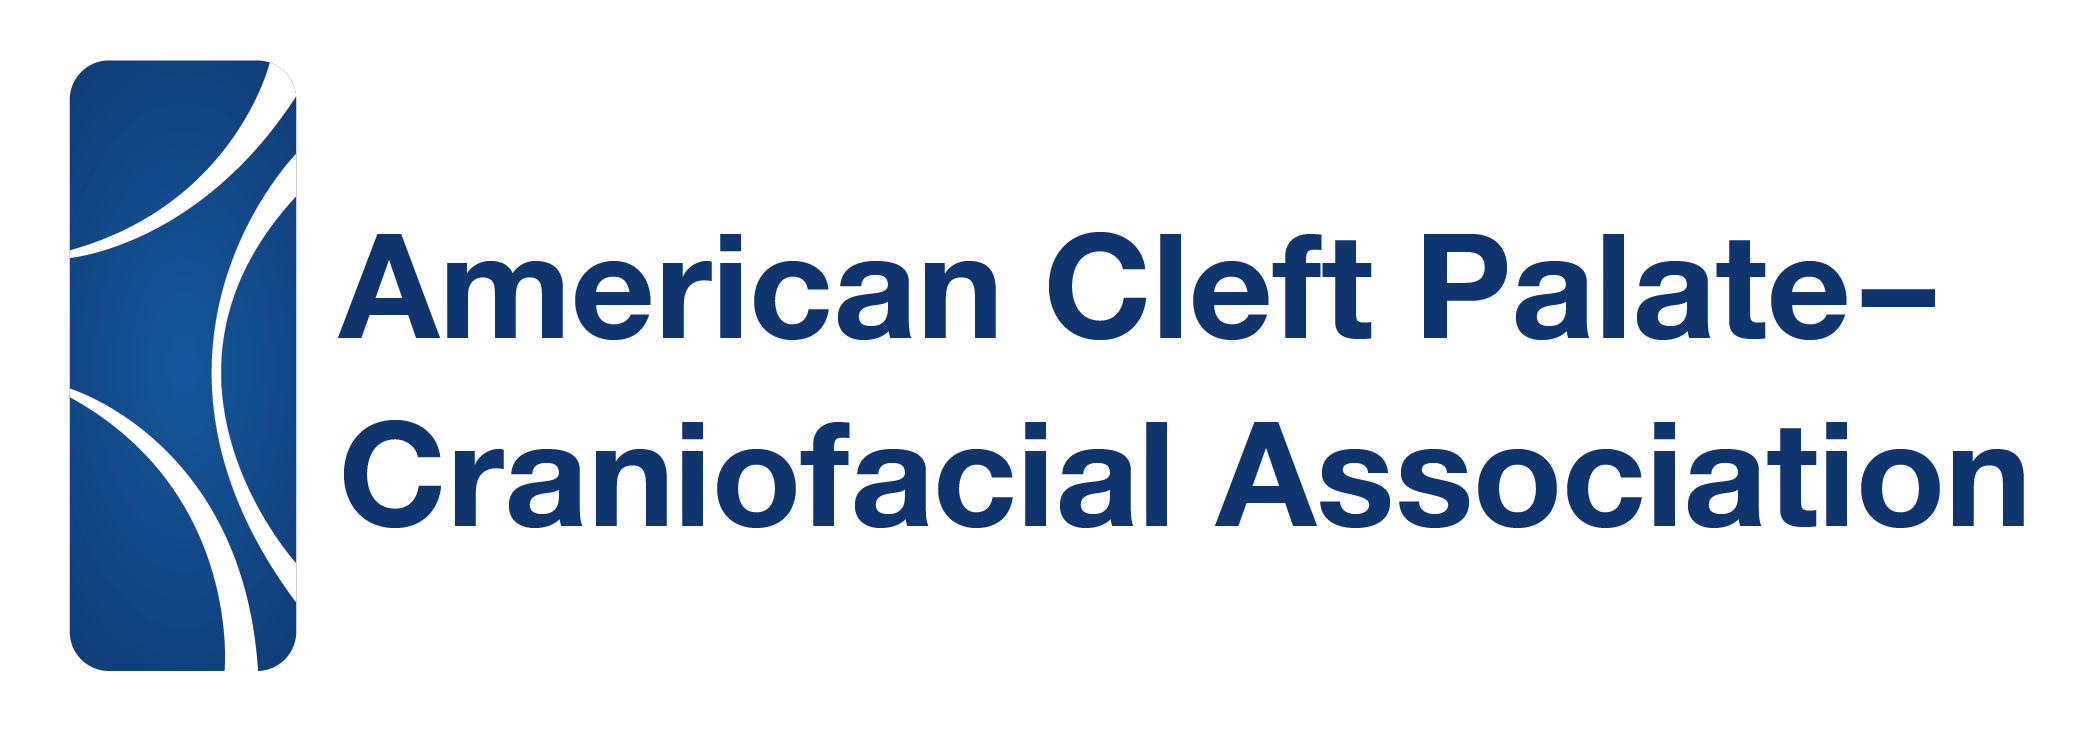 American Cleft Palate Association